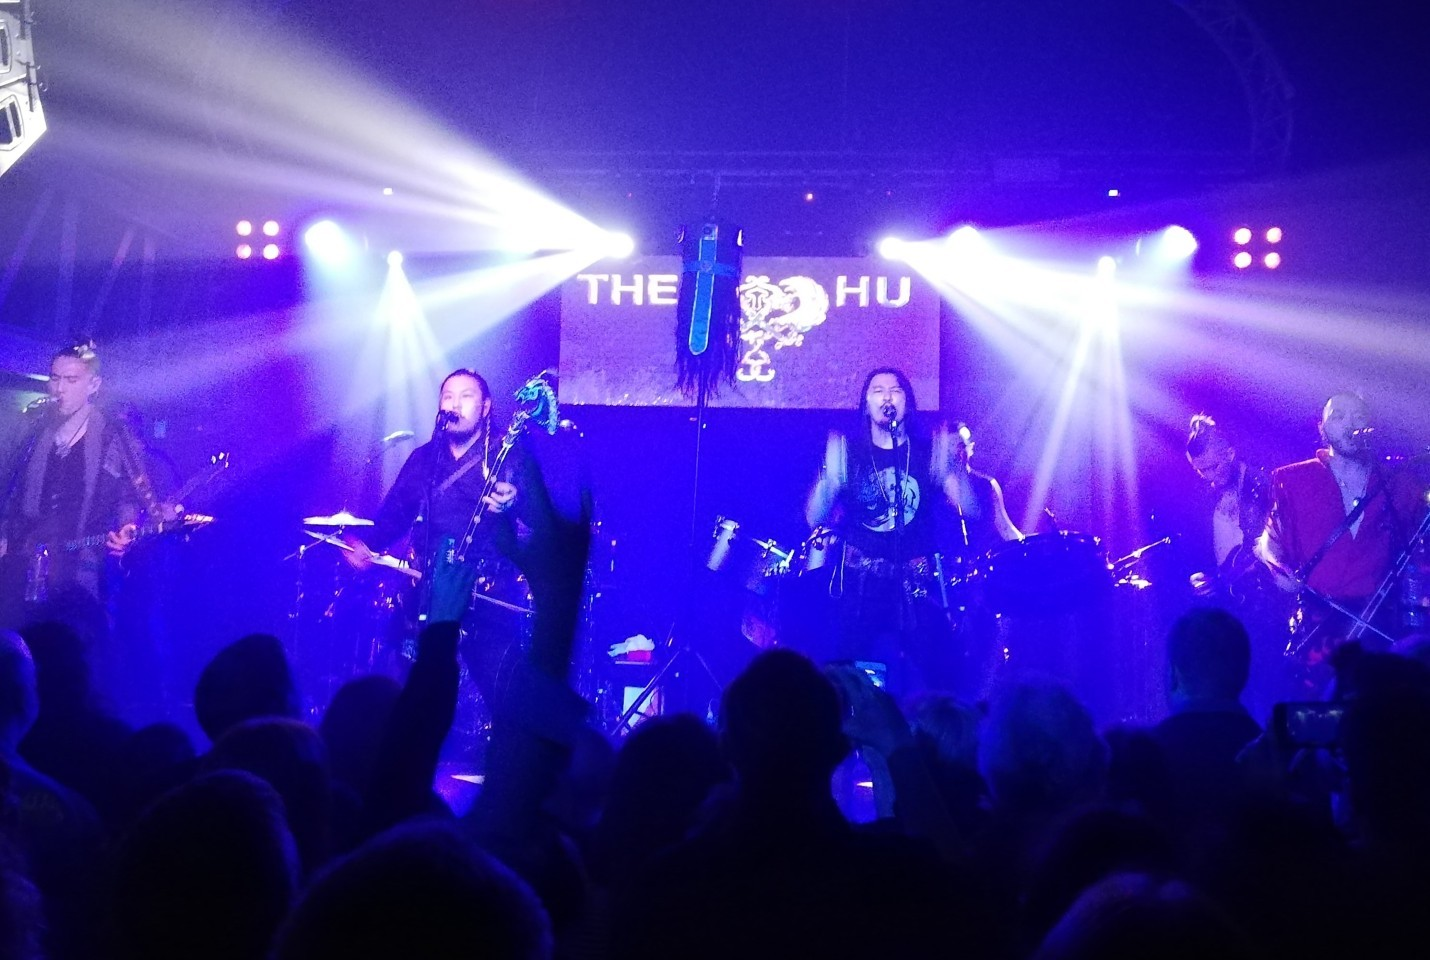 Gig Review - The Hu